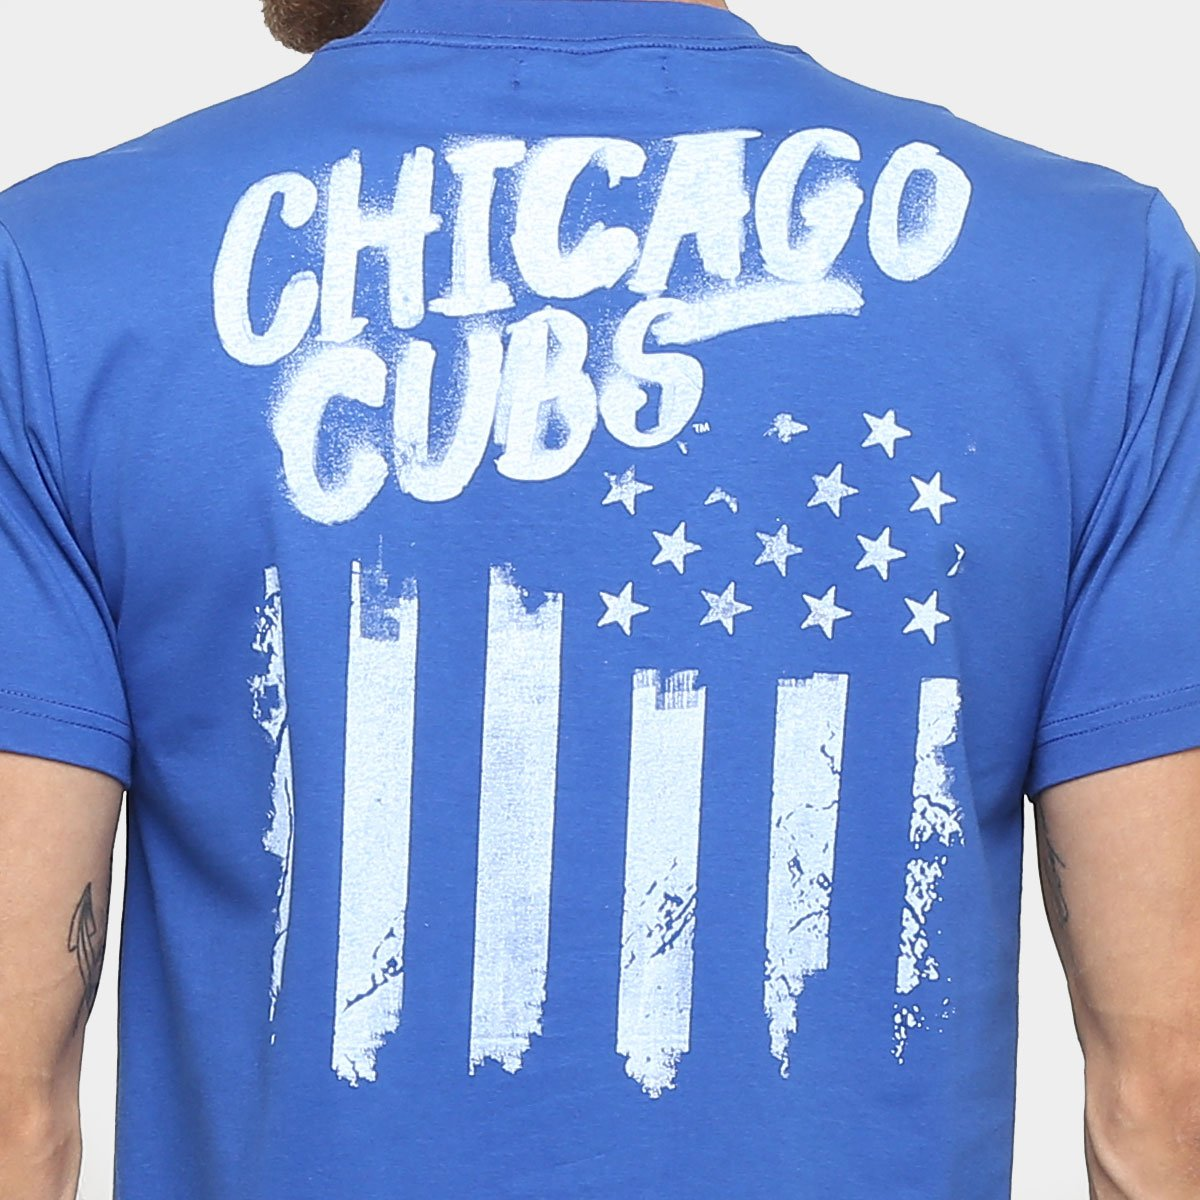 4201d76eb6 Camiseta New Era MLB Nac Flag Usa 6 Chicago Cubs - Compre Agora ...